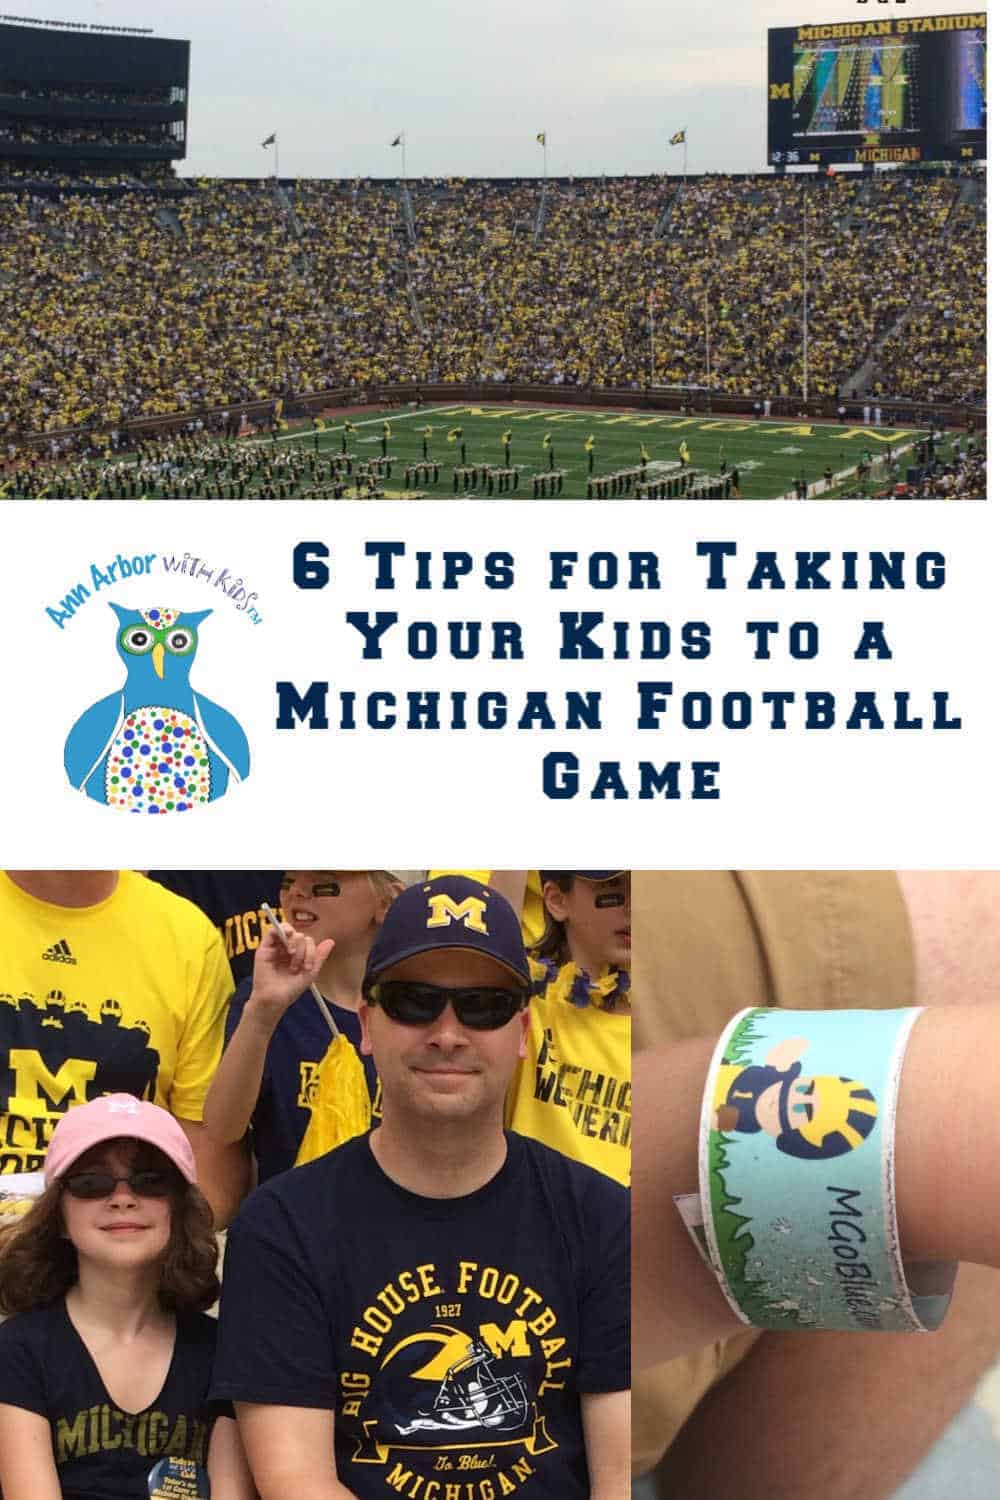 6 Tips for Taking your Kids to a Michigan Football Game #GoBlue #AnnArbor